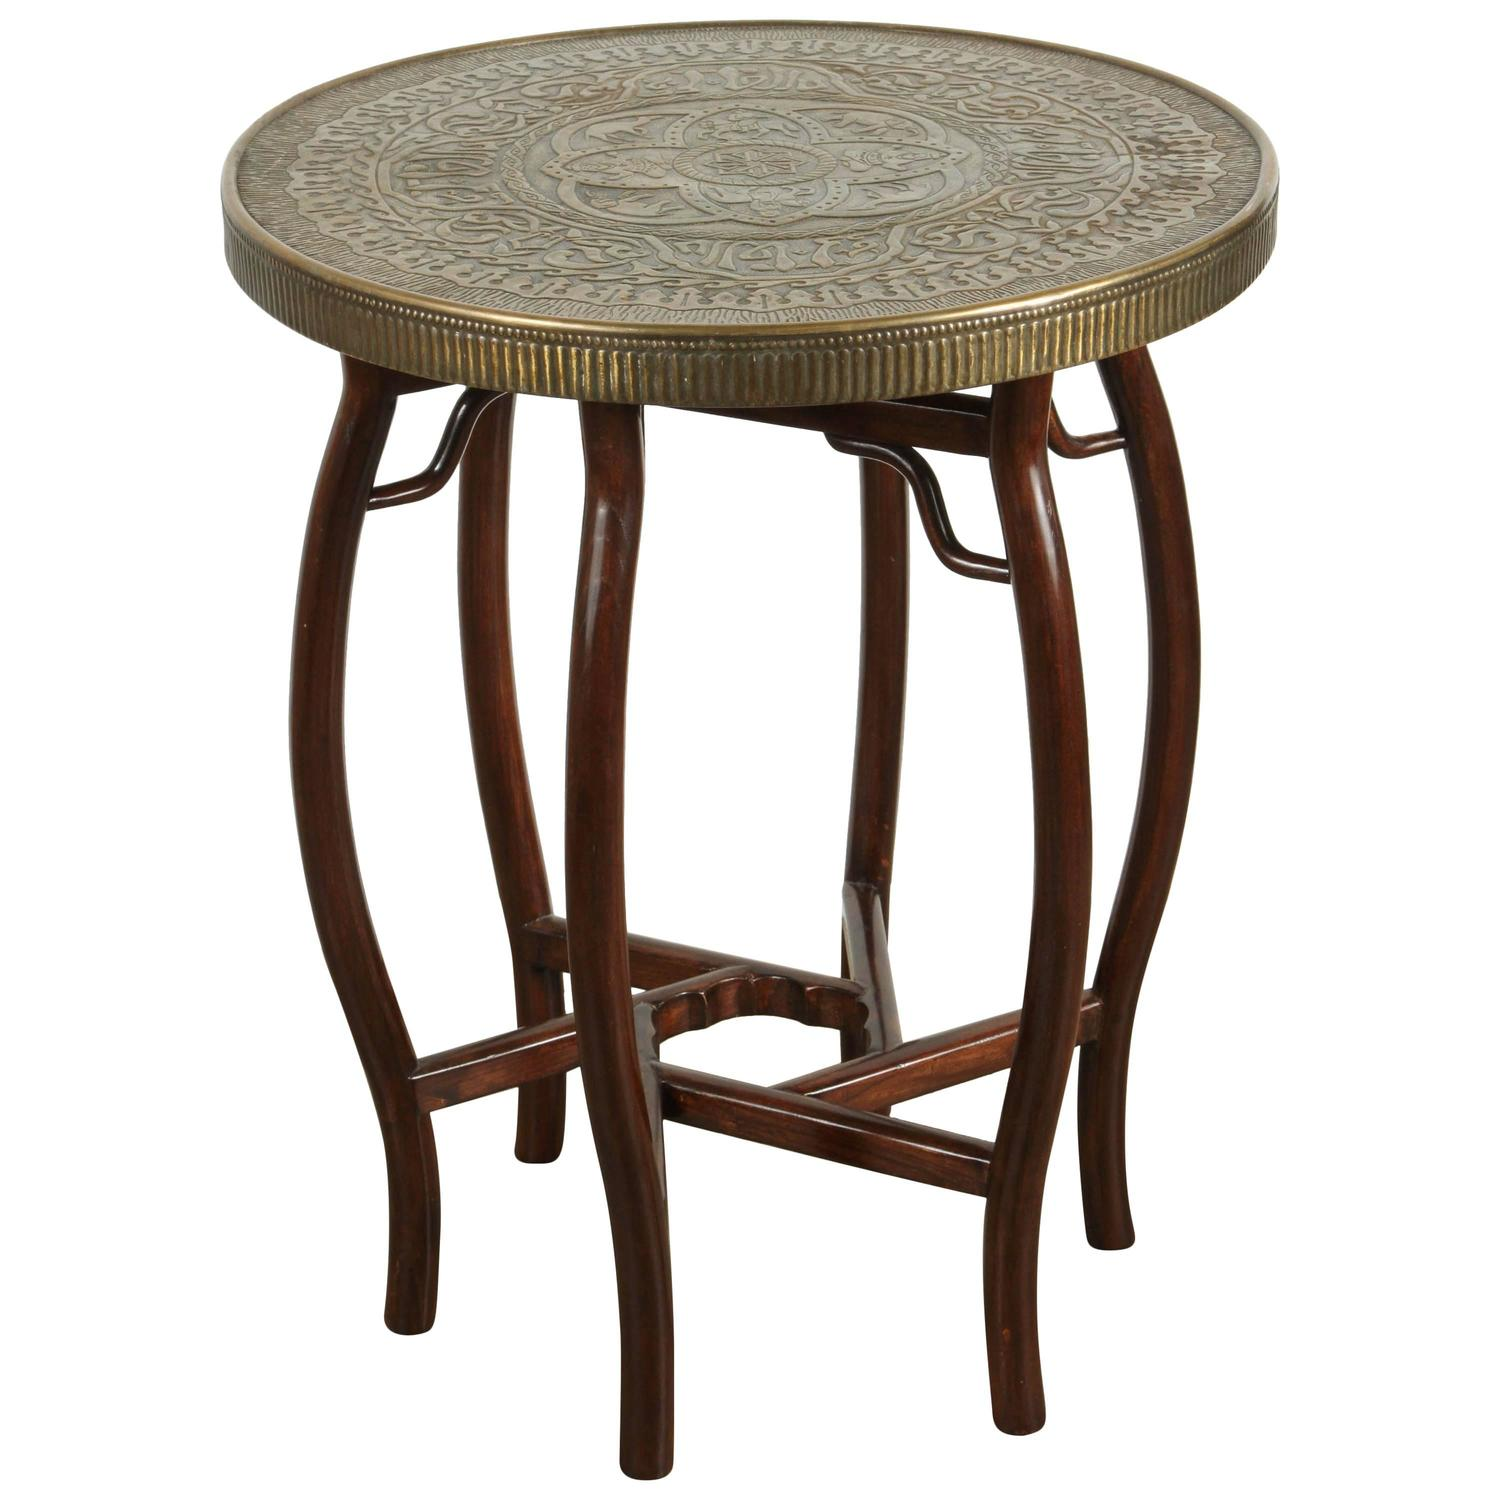 Brass tray side table at 1stdibs for Tray side table